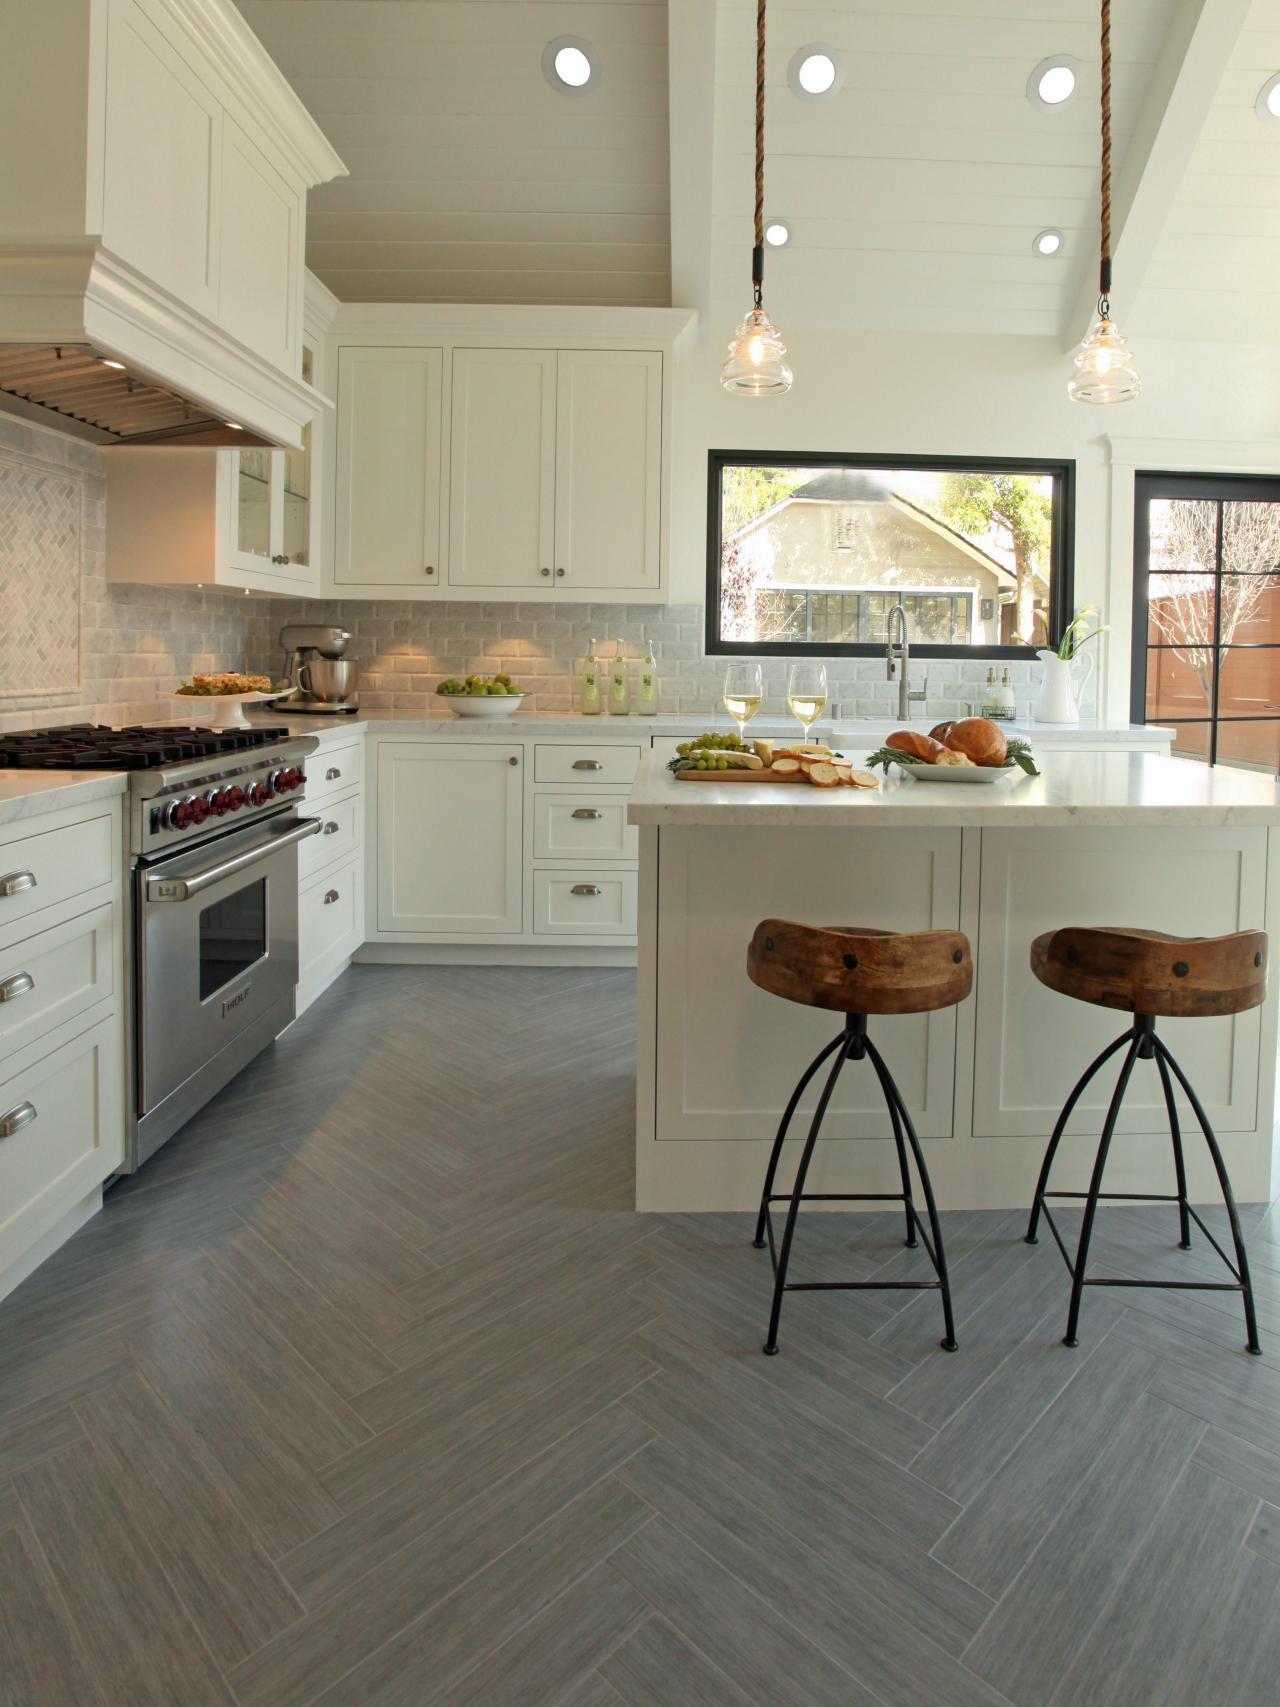 kitchen flooring tiles small cabinets ideas interior design styles and color